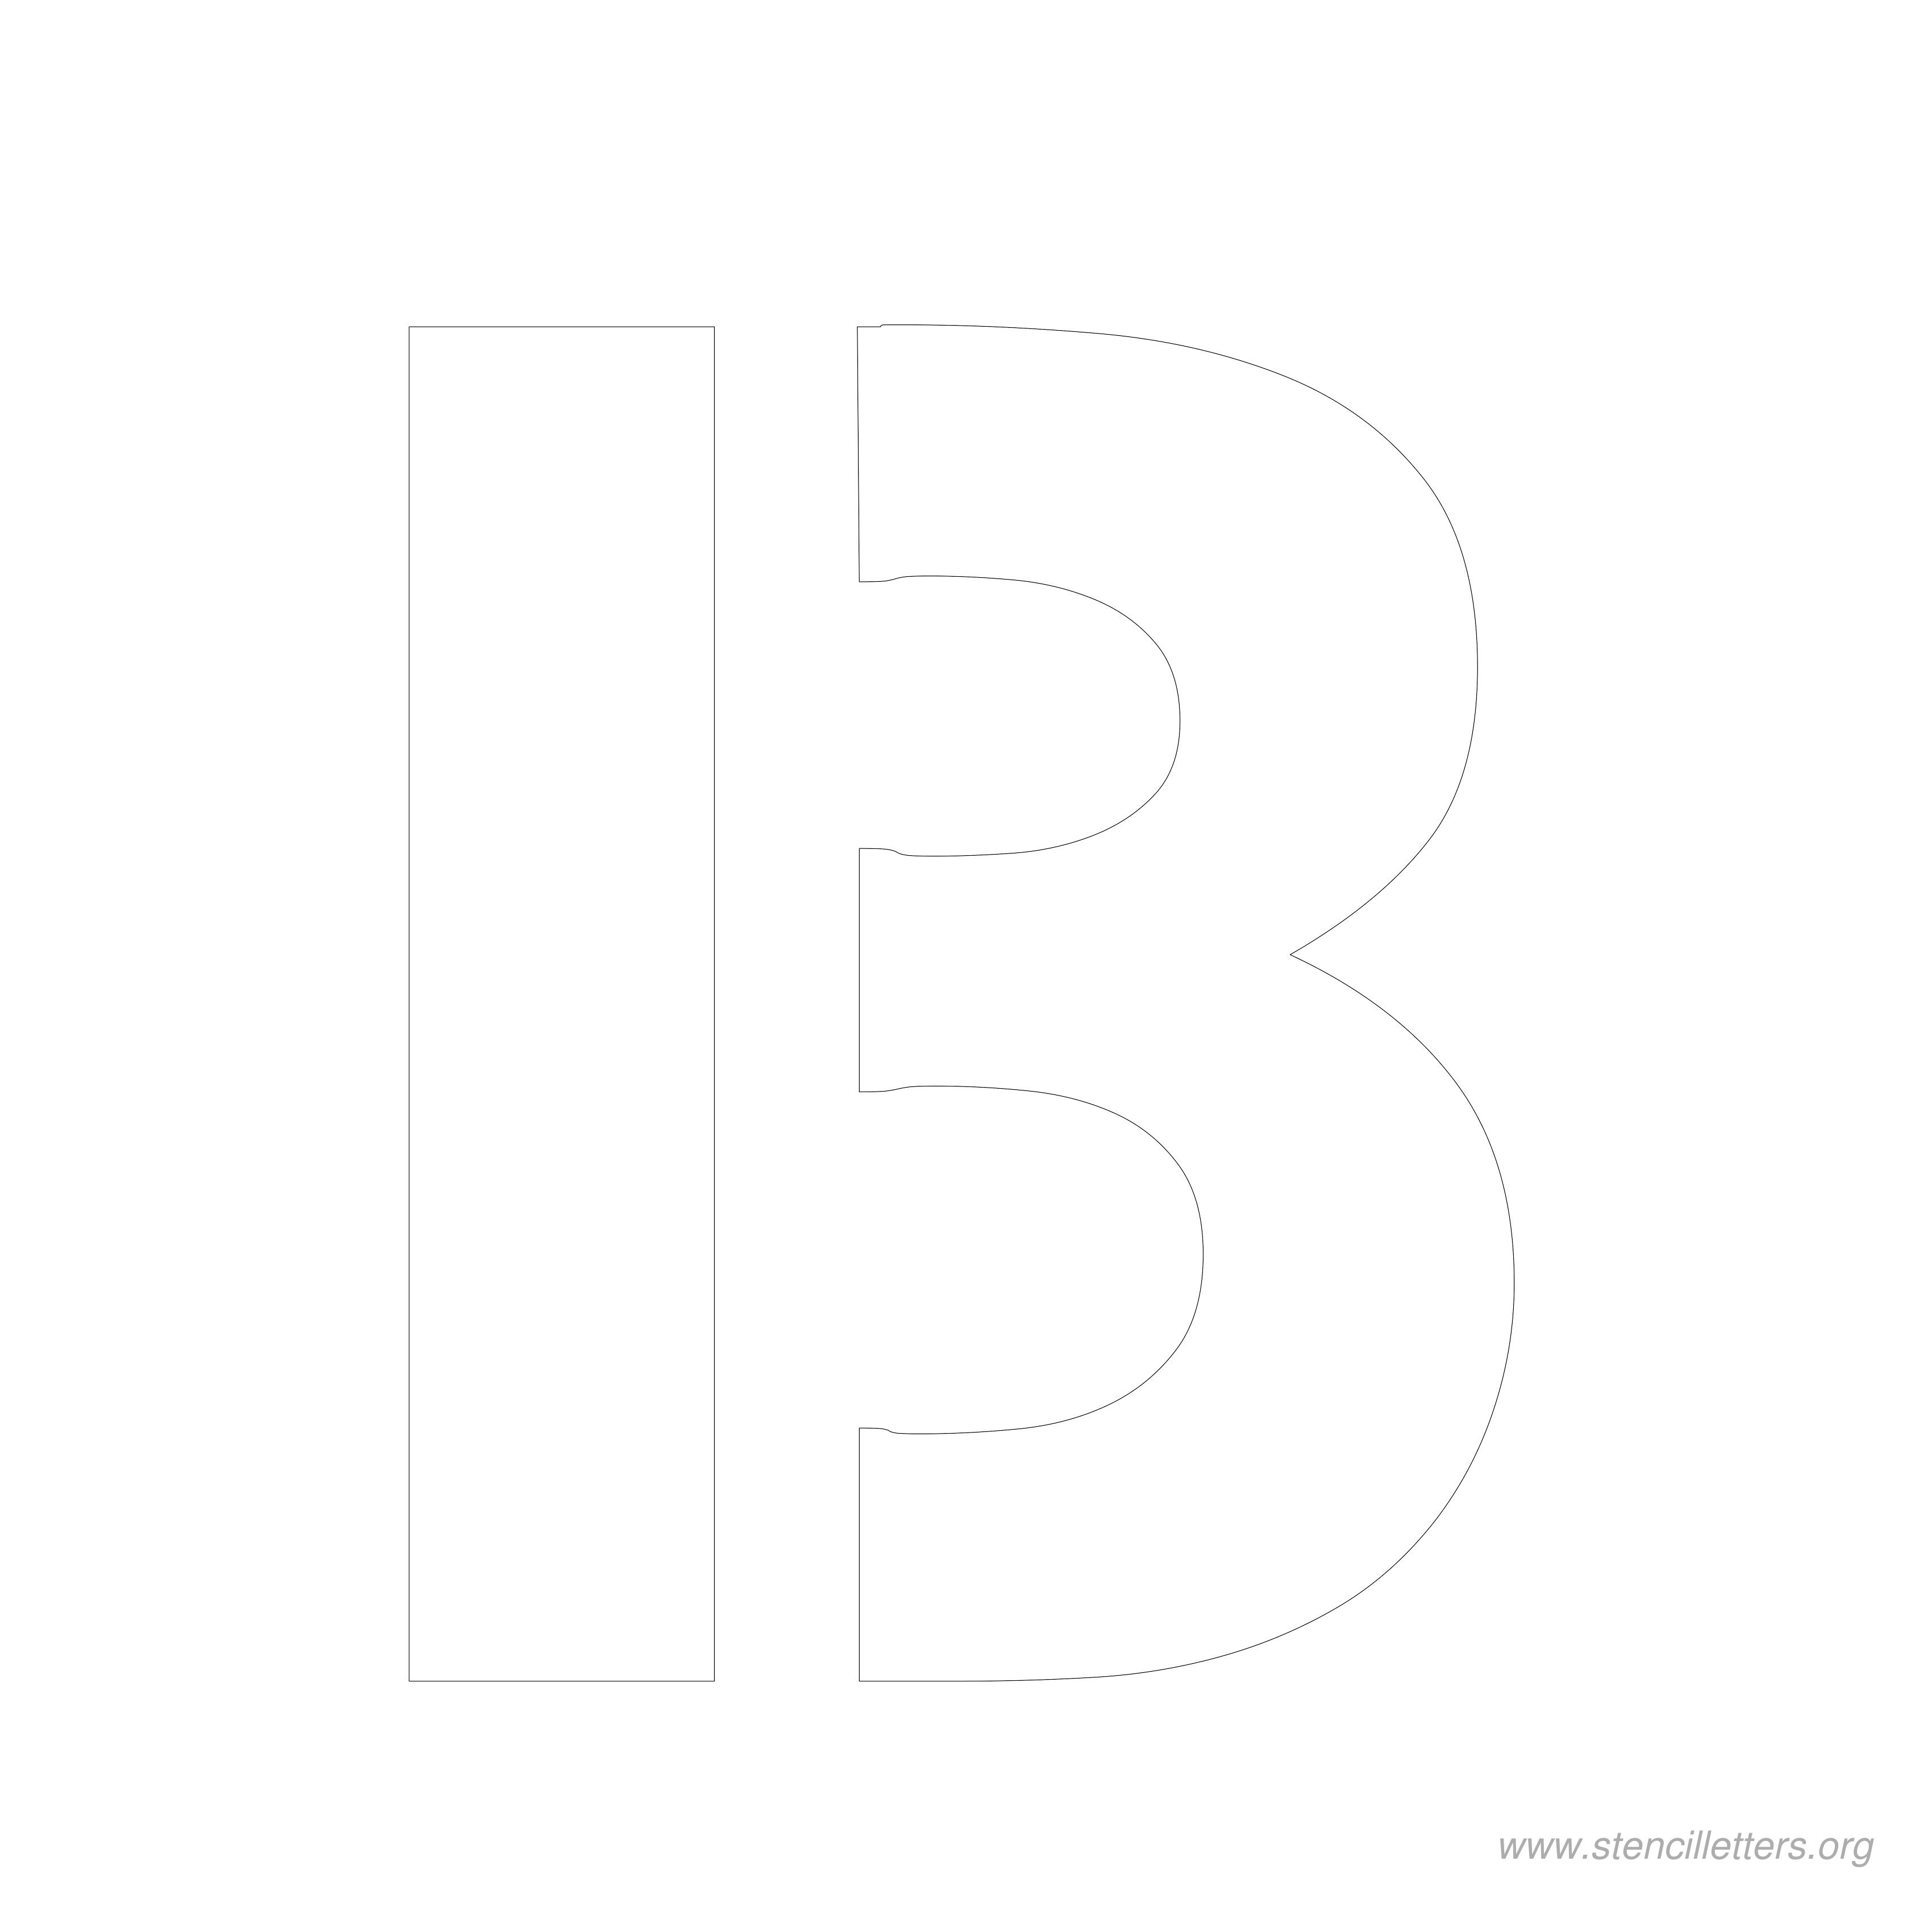 8 Inch Stencil Letters | Stencil Letters Org - Free Printable 3 Inch Number Stencils